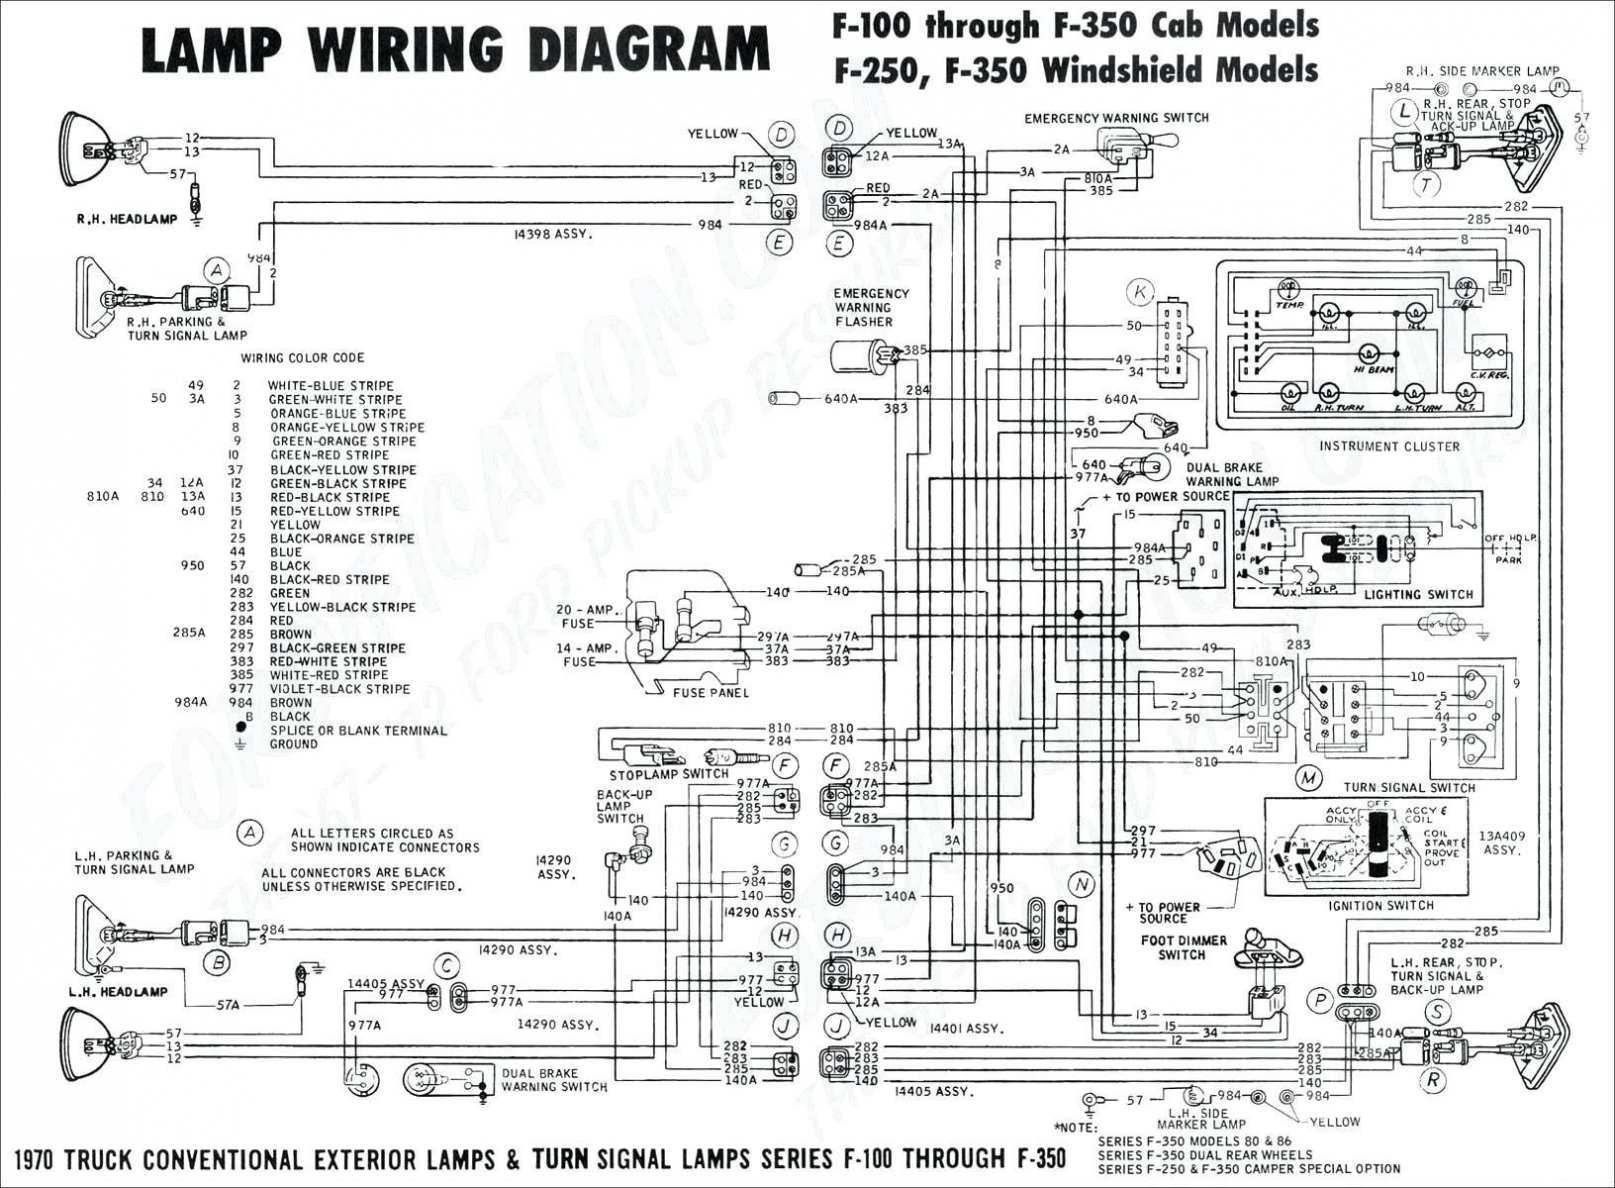 hight resolution of diagram also chevy headlight switch wiring furthermore dodge diagram diagram download 2001 dodge dakota headlight also 93 dodge dakota